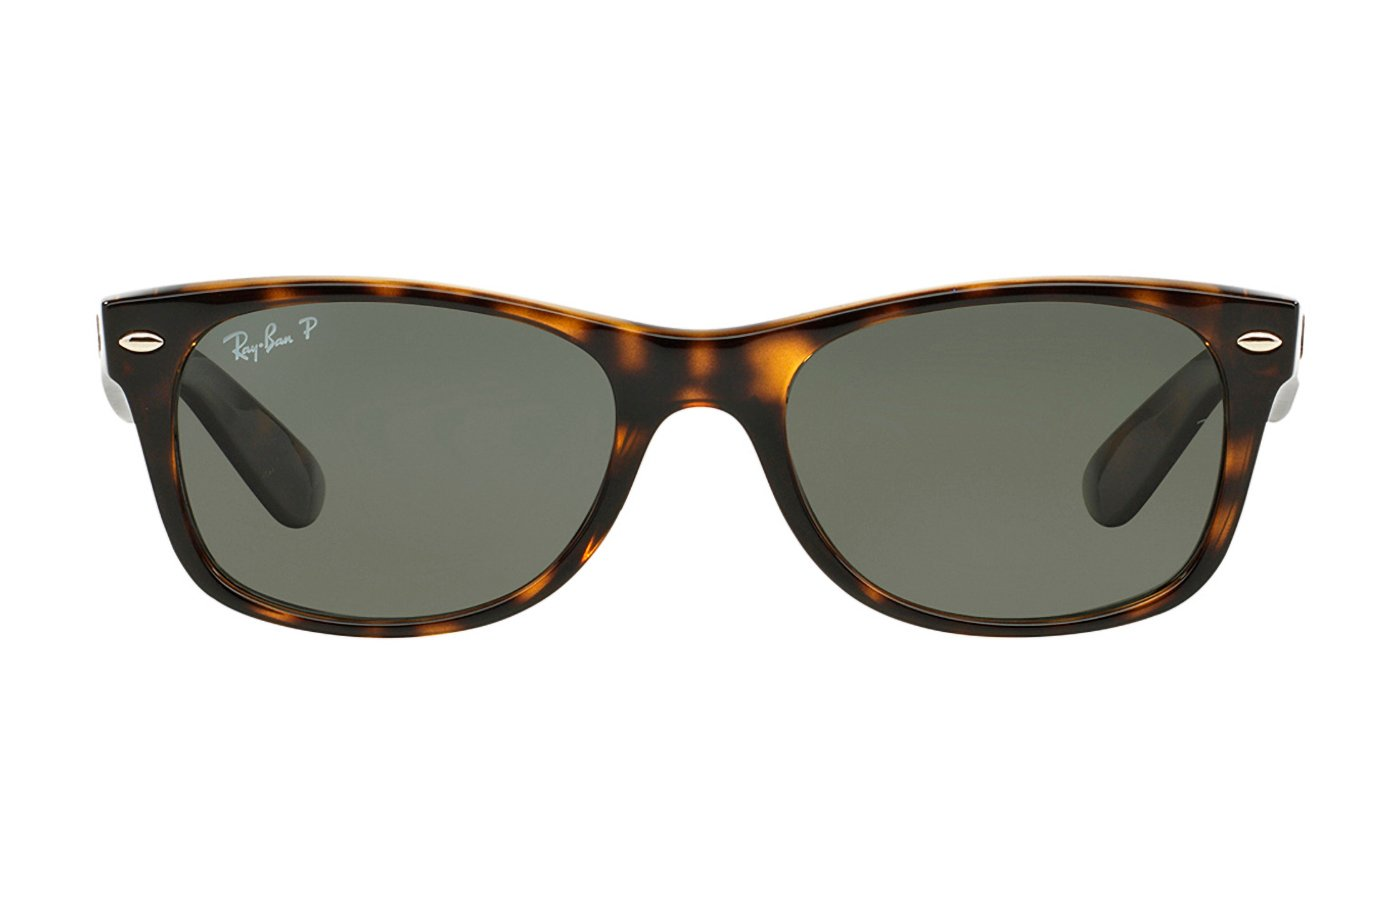 RAY-BAN NEW WAYFARER 0RB2132 52 902/58 TORTOISE POLARIZADA